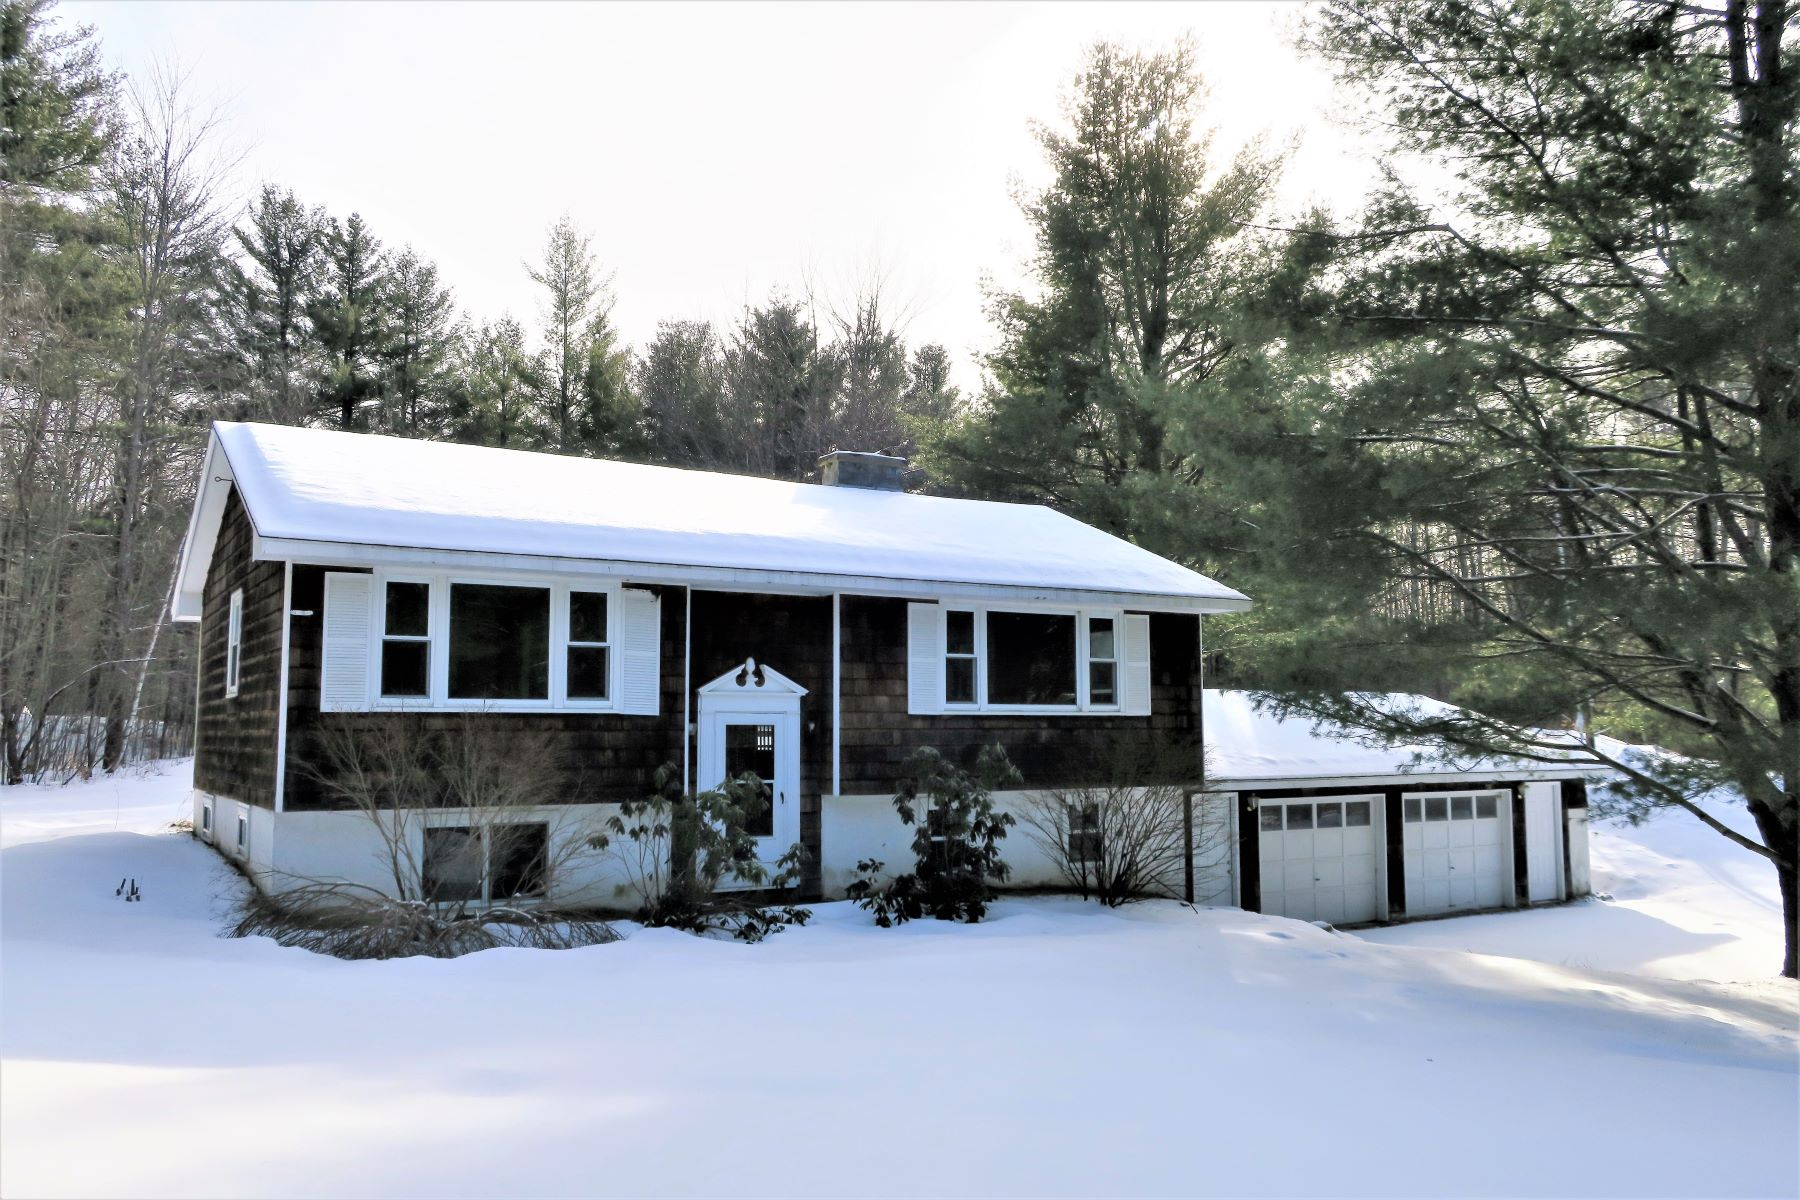 Single Family Home for Sale at 7642 Vermont Route 30, Jamaica 7642 Vermont Route 30 Jamaica, Vermont 05343 United States